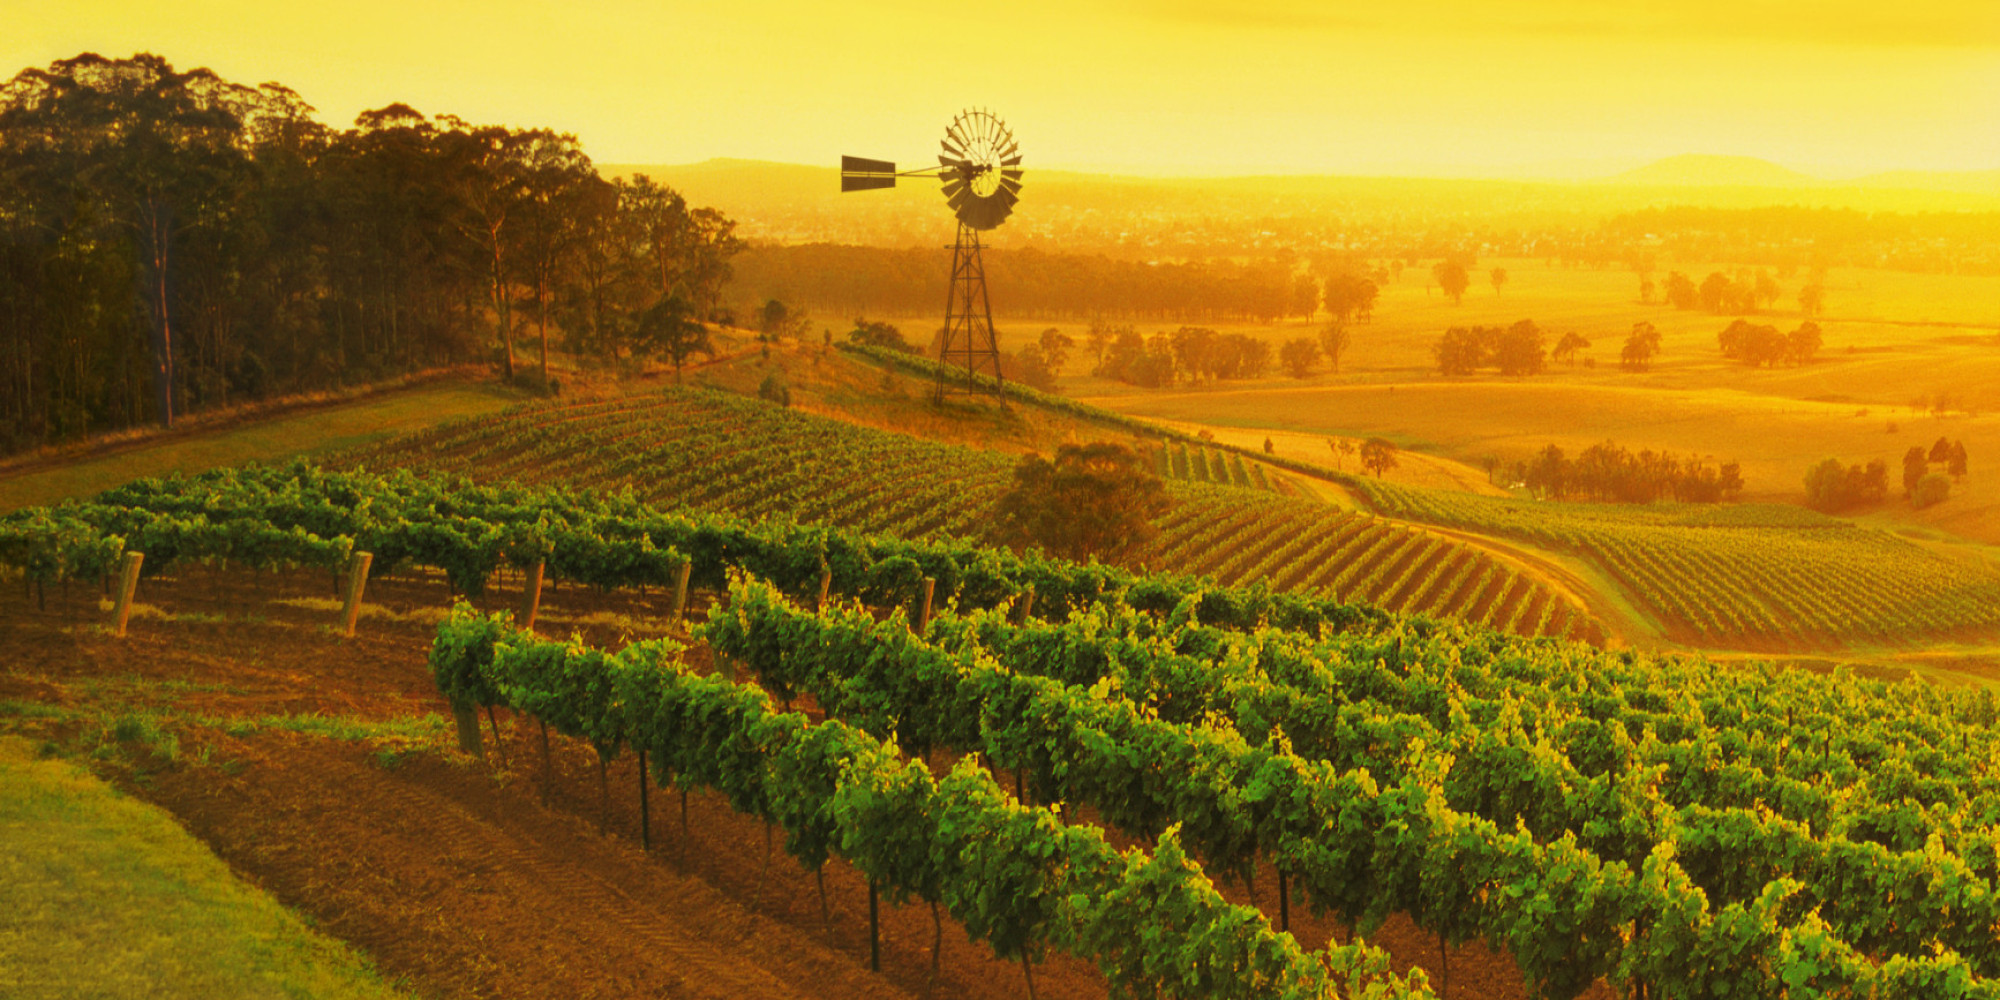 A Guide To Australia's Wine Regions, From Wine Experts